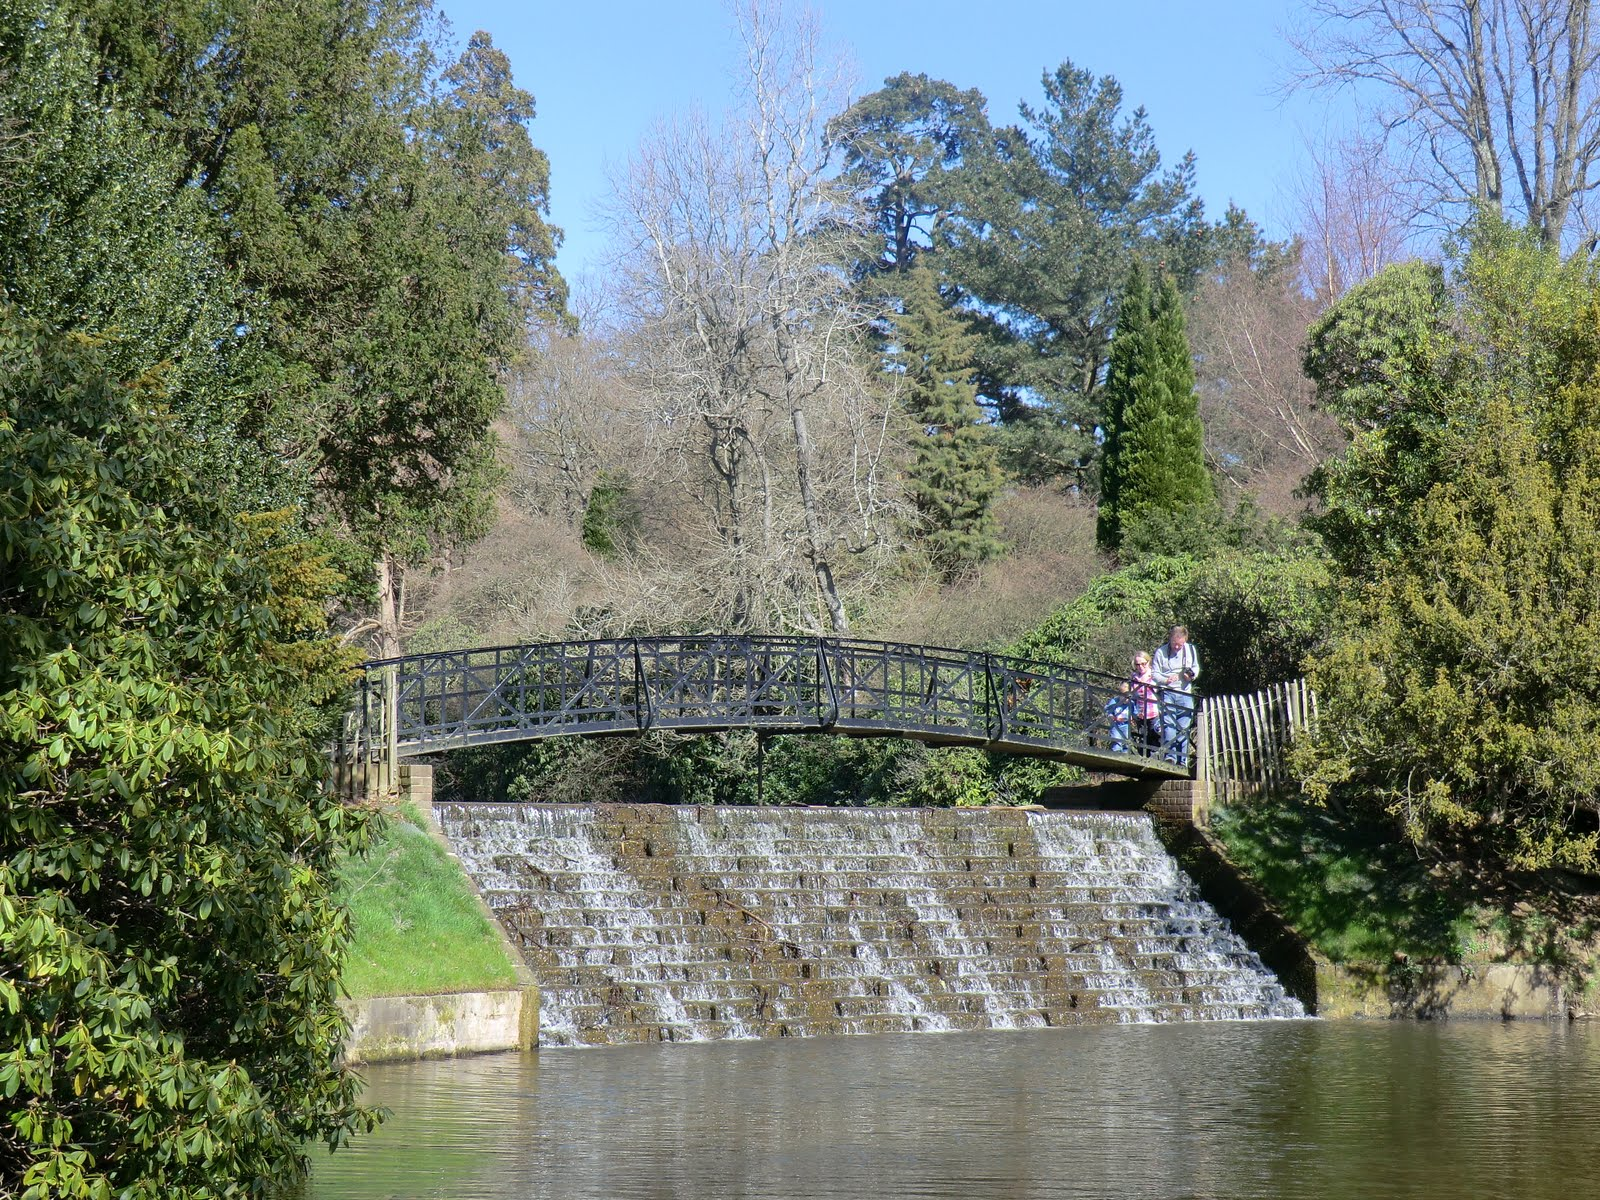 CIMG2298 Cascade Bridge, Sheffield Park and Garden